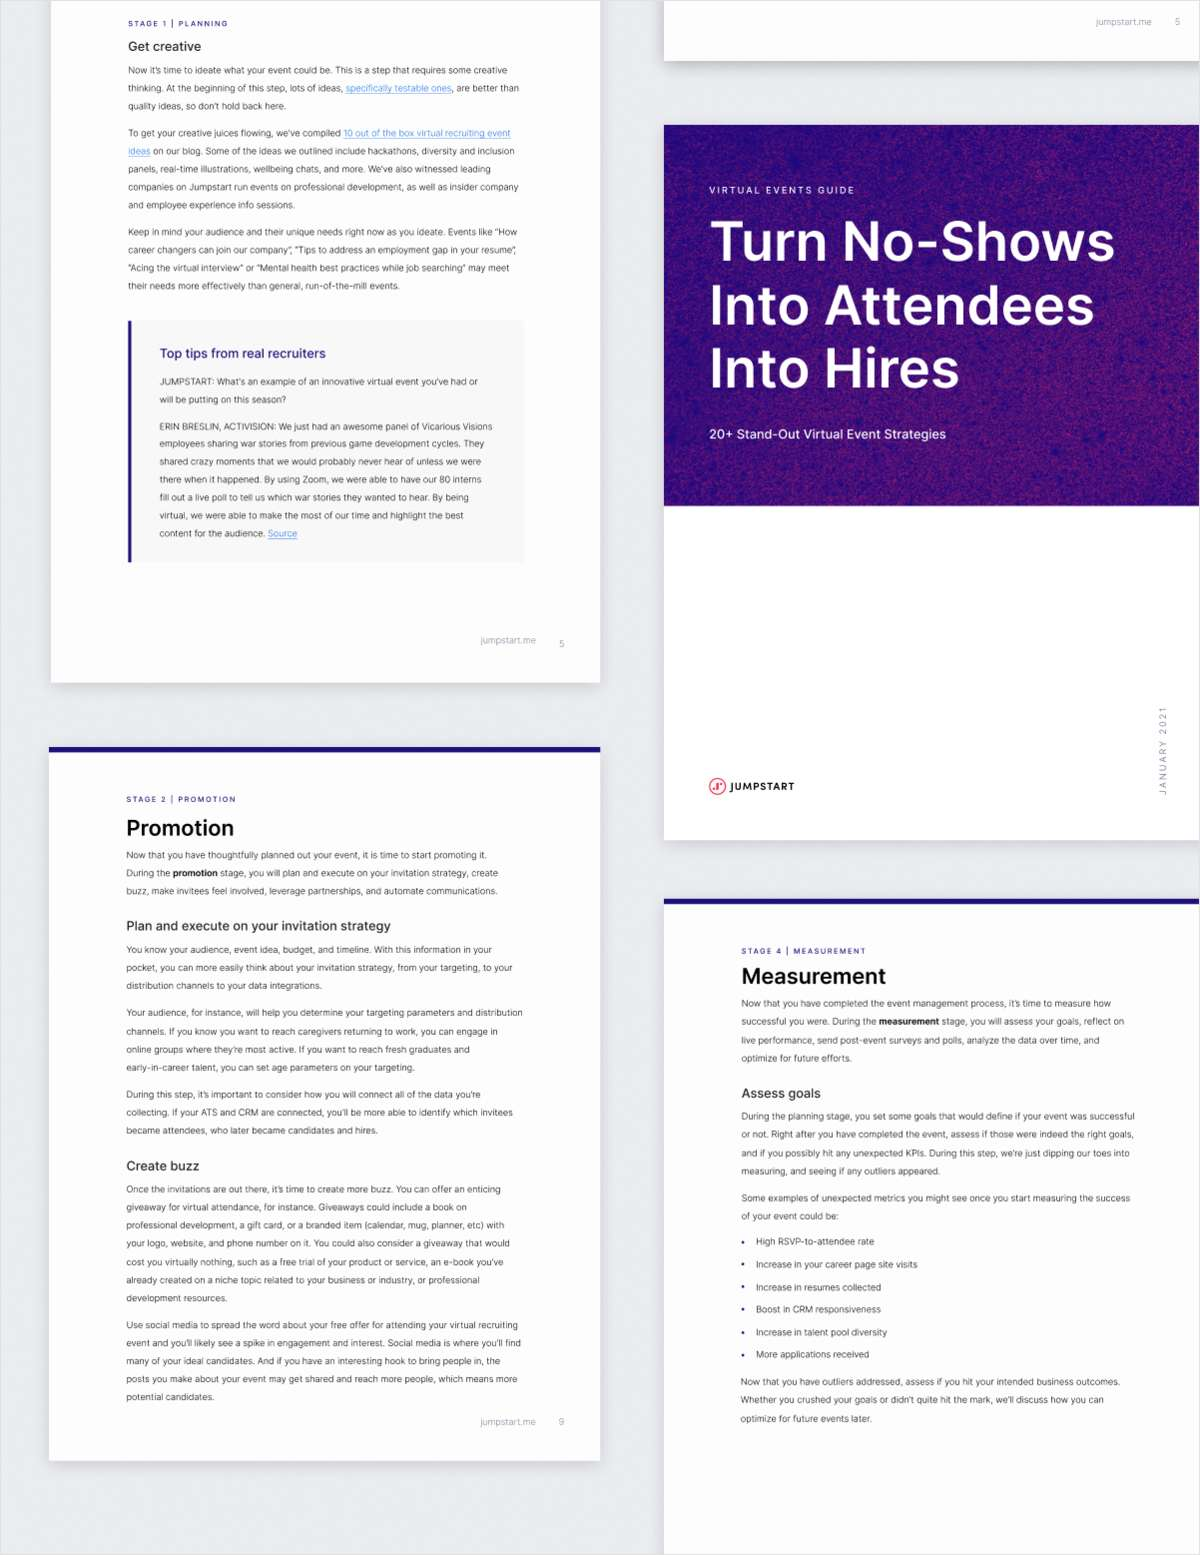 Free Virtual Events Guide: Turn No-Shows Into Attendees Into Hires